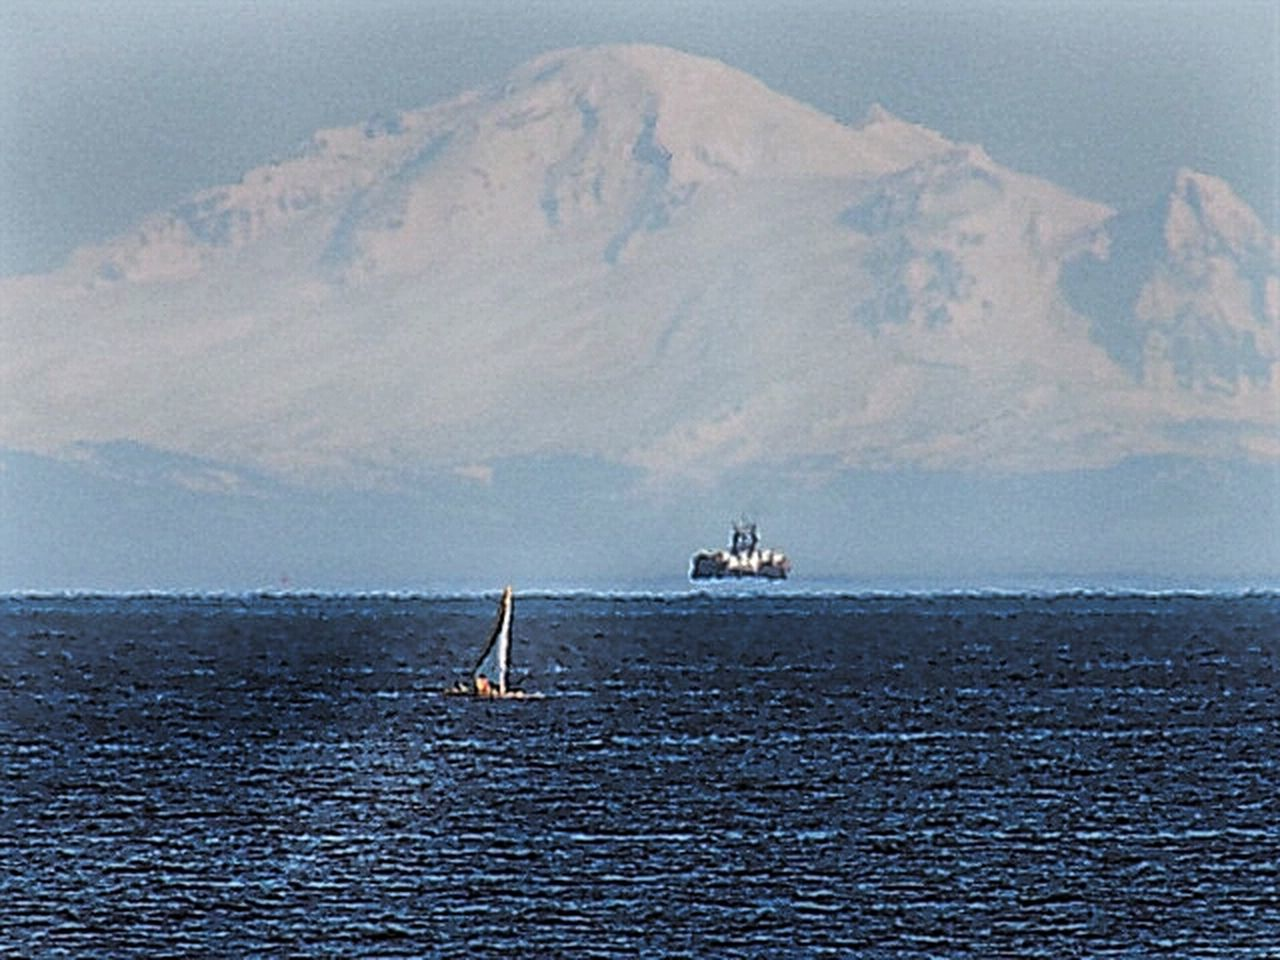 Mt. Baker Water Sea Nautical Vessel Waterfront Transportation Mountain Tranquil Scene Boat Scenics Tranquility Rippled Sailing Mode Of Transport Nature Beauty In Nature Blue Sky Sailboat Ocean Calm Mt. Baker Vancouver Island Pacific Northwest  Volcano Cascade Mountains